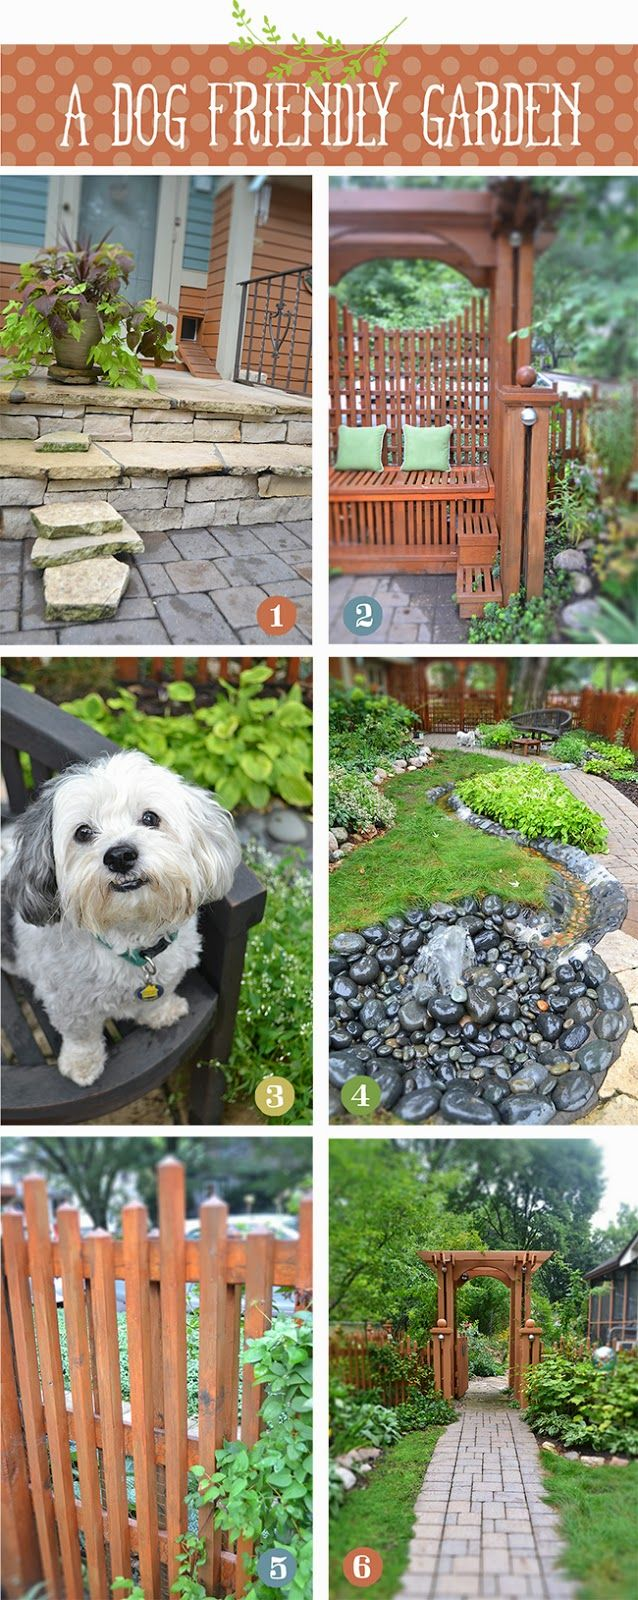 I don't own a dog, but this garden made me think it could be possible one day!  Lisa Orgler Design: A DOG FRIENDLY GARDEN